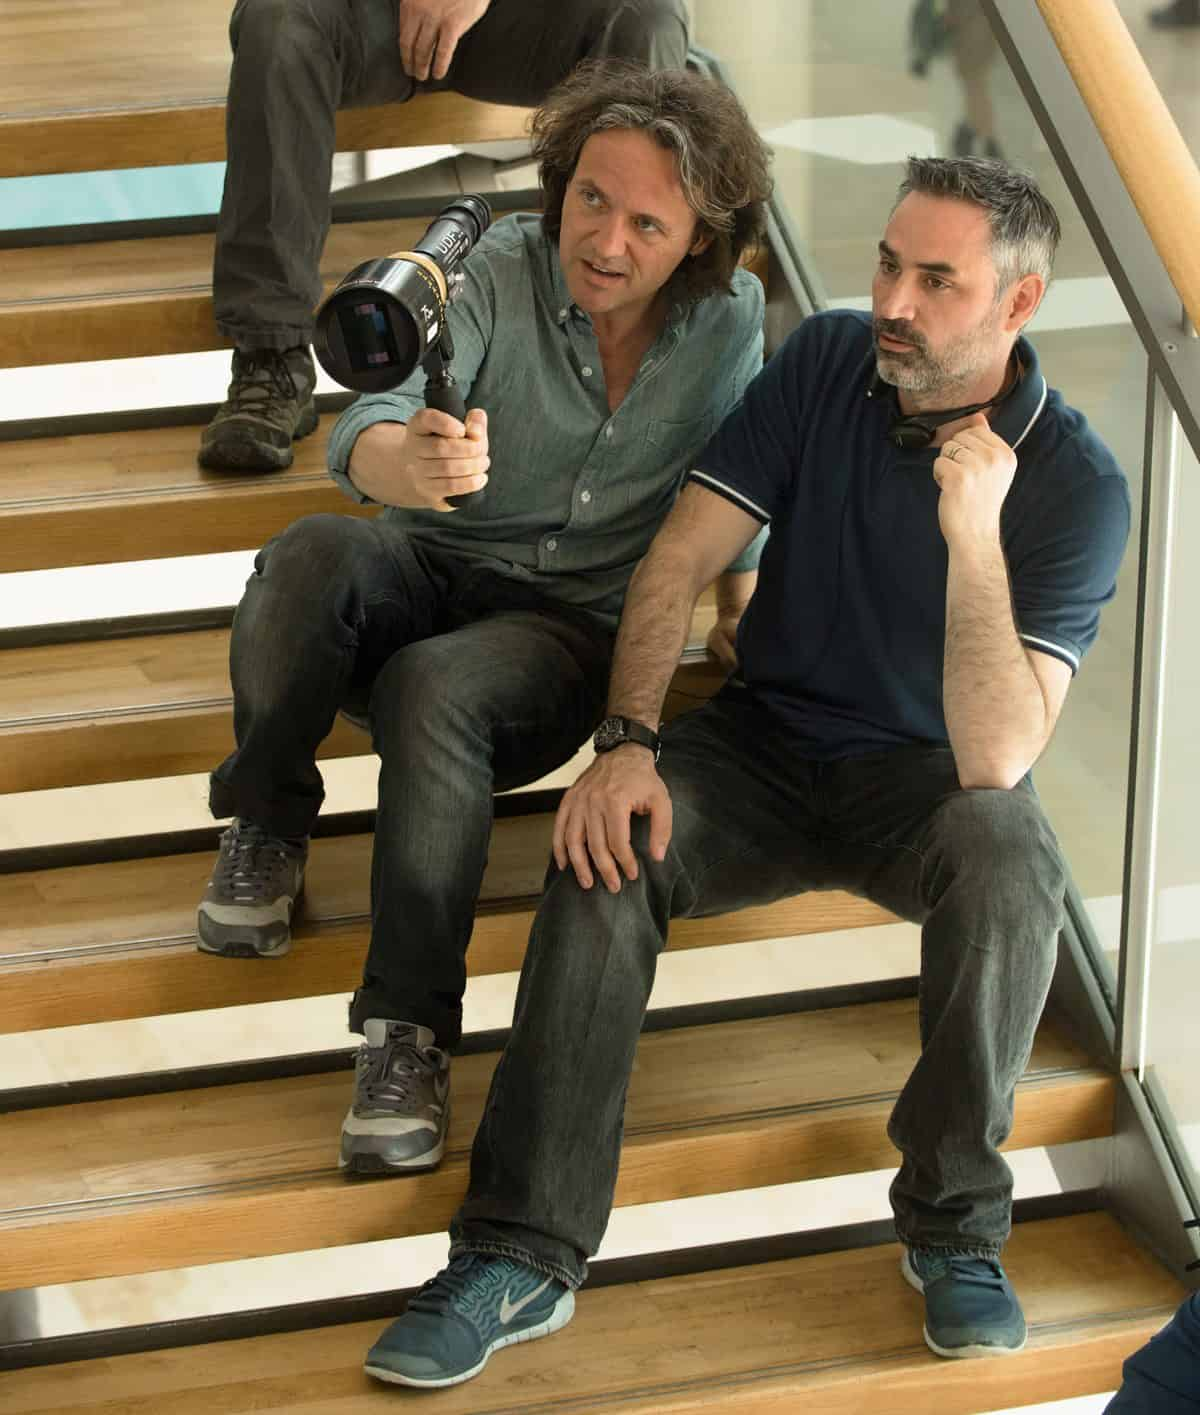 Director of photography Rob Hardy and director Alex Garland on the set. <br>Photo Credit: Peter Mountain